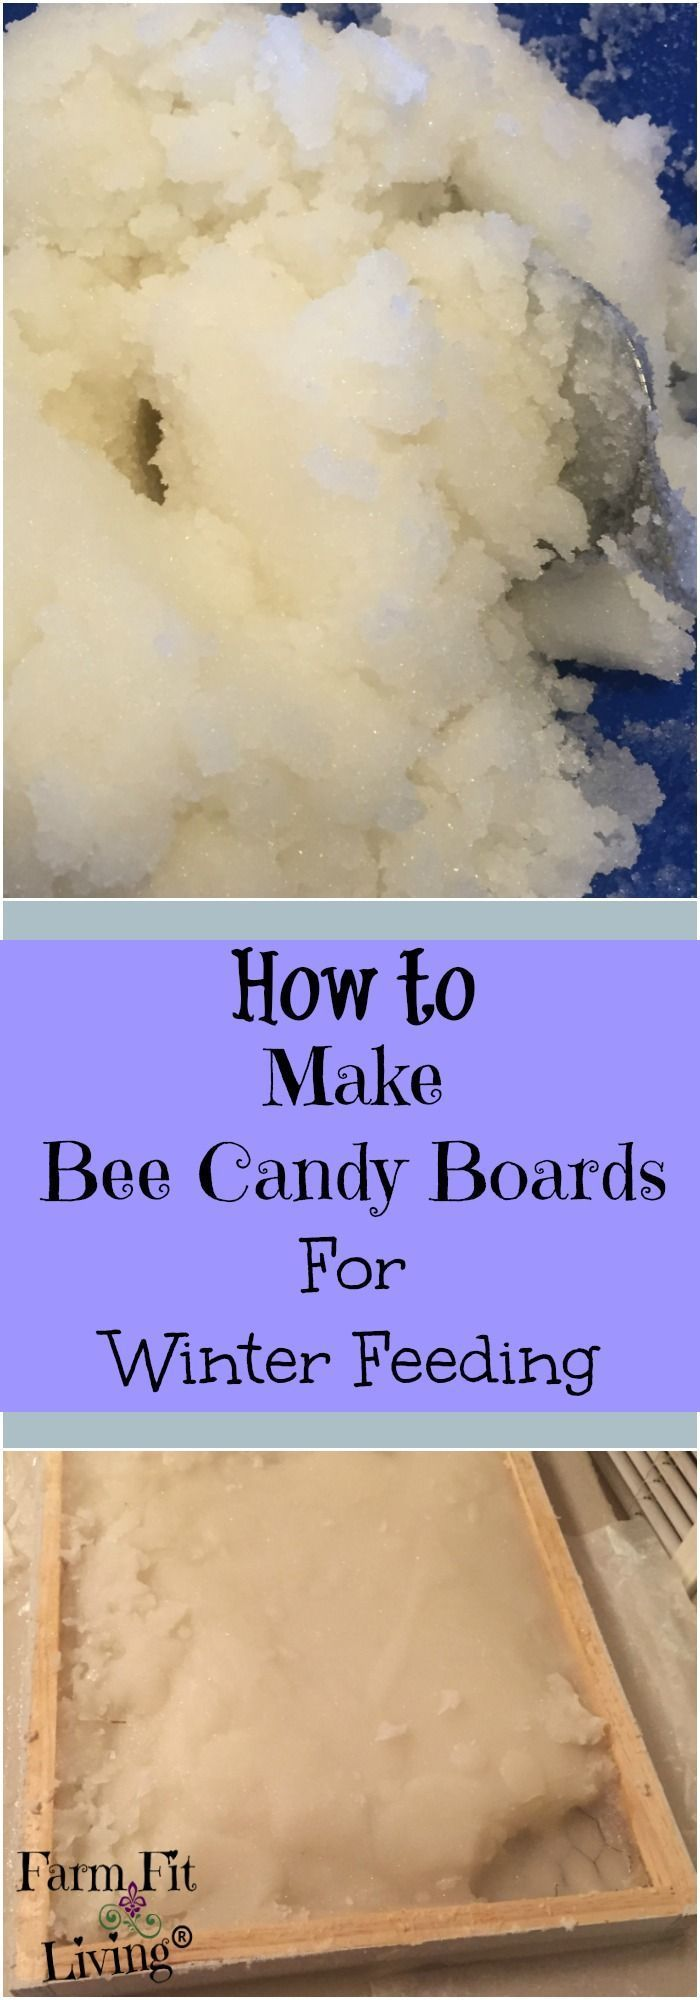 how to make bee candy boards for winter bee feeding candy board